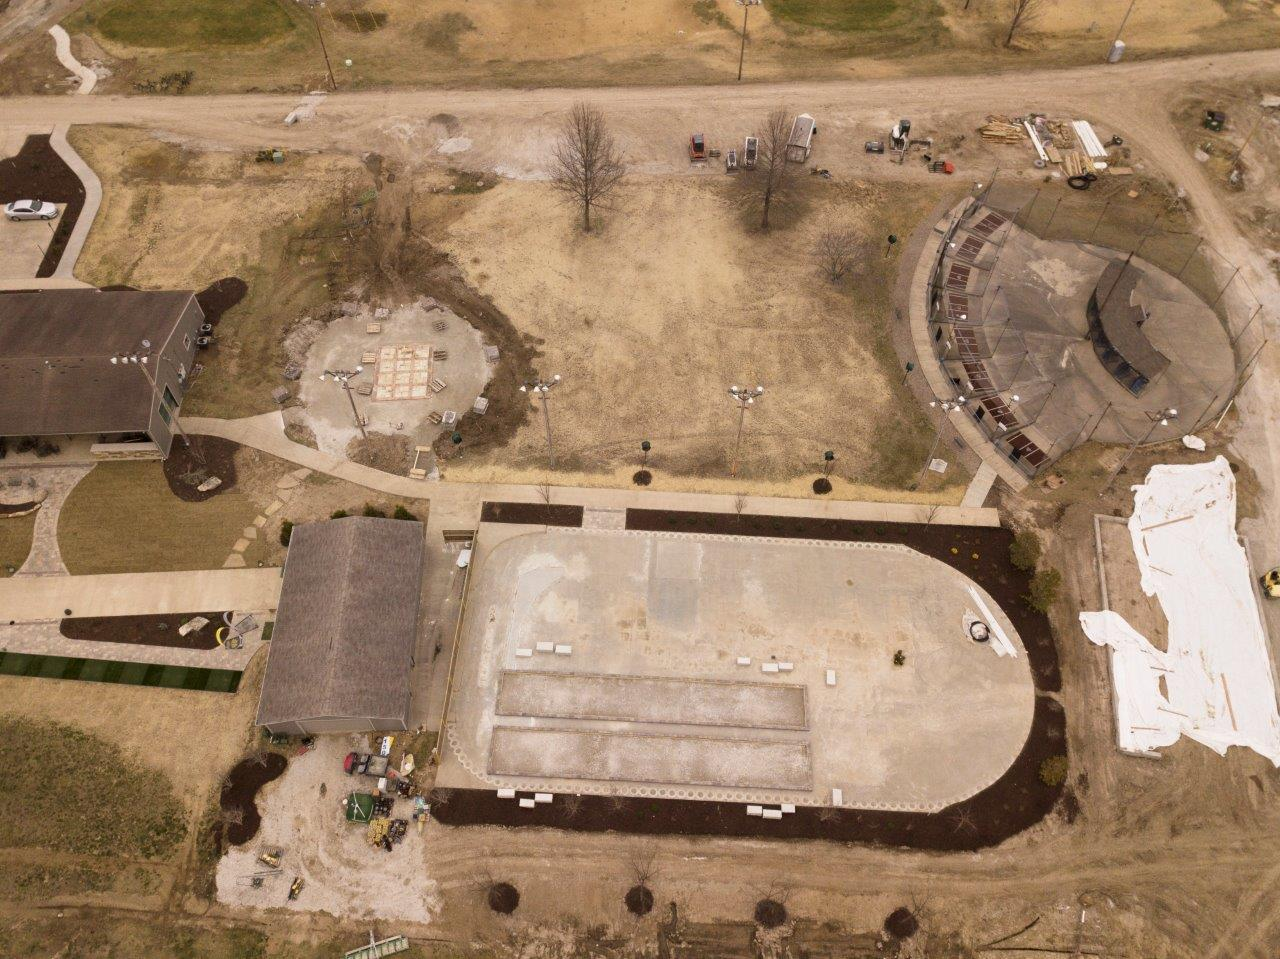 Bocce Ball Courts and Game Area